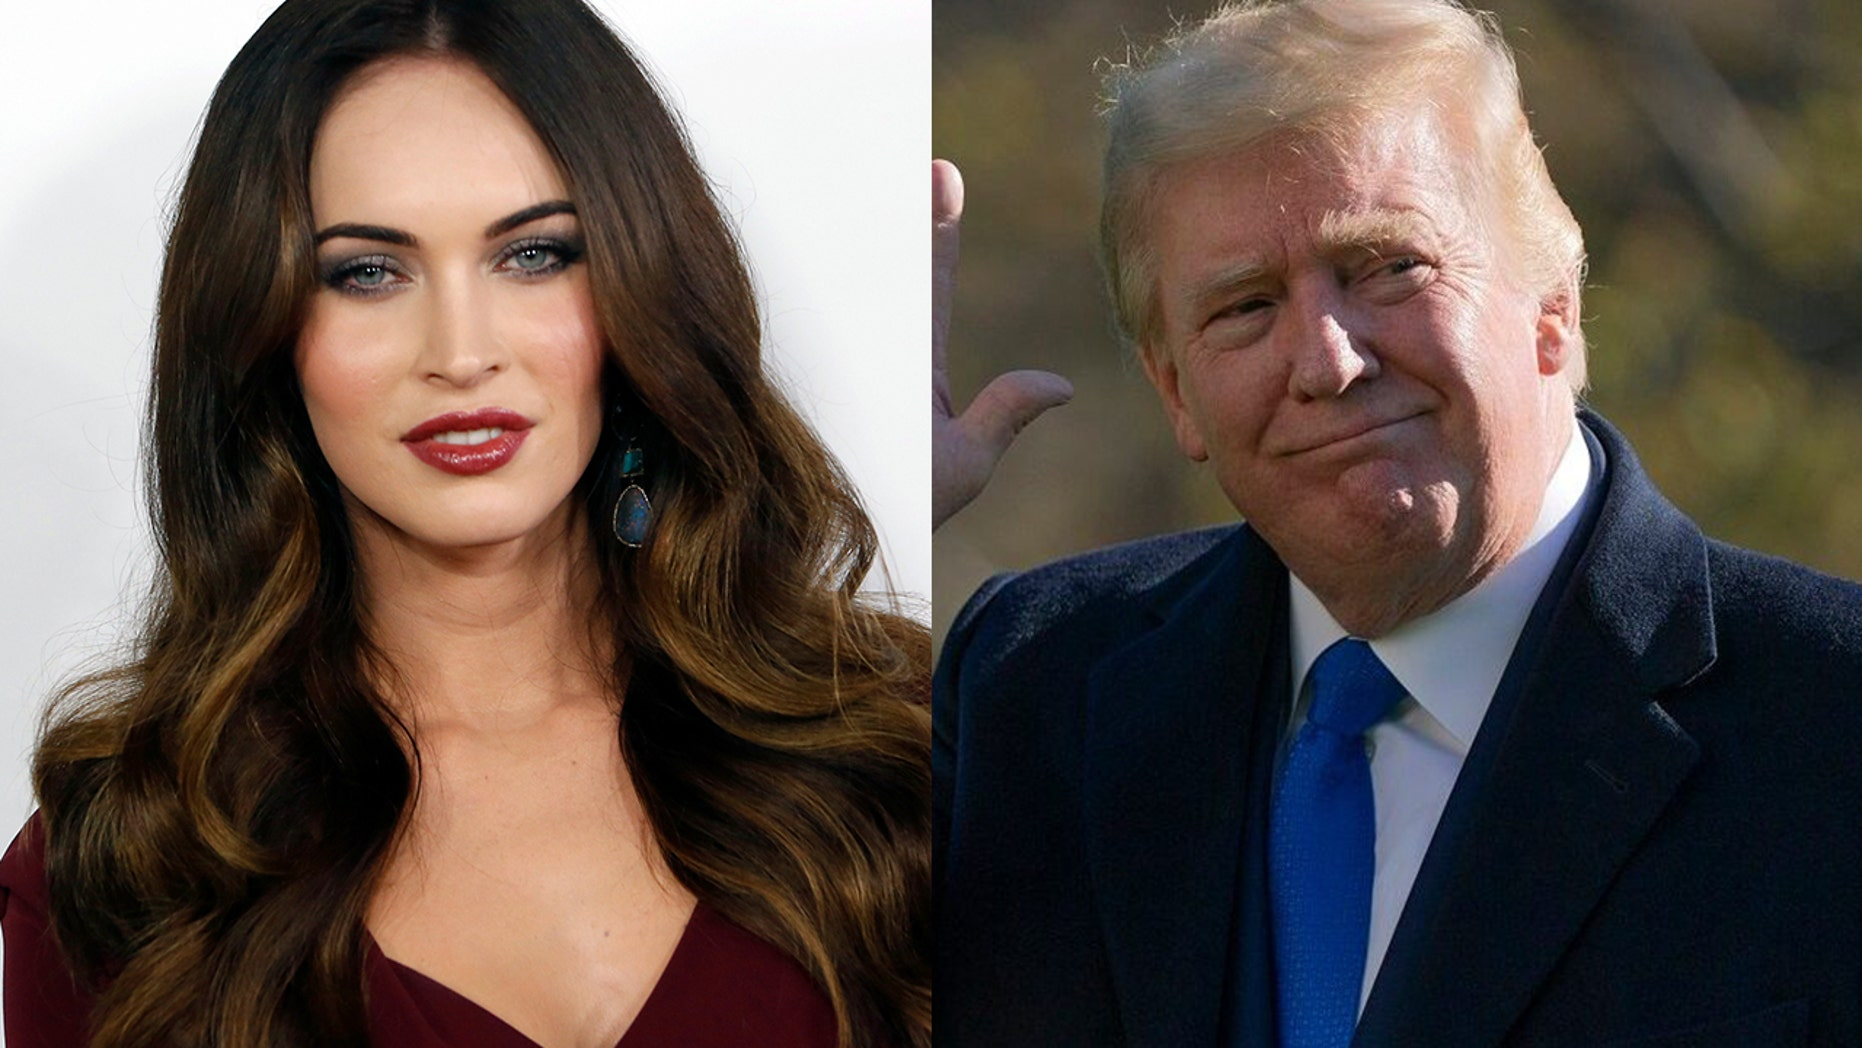 megan-fox-claps-back-at-haters-trying-to-cancel-her-for-calling-donald-trump-a-legend-in-out-of-context-comment